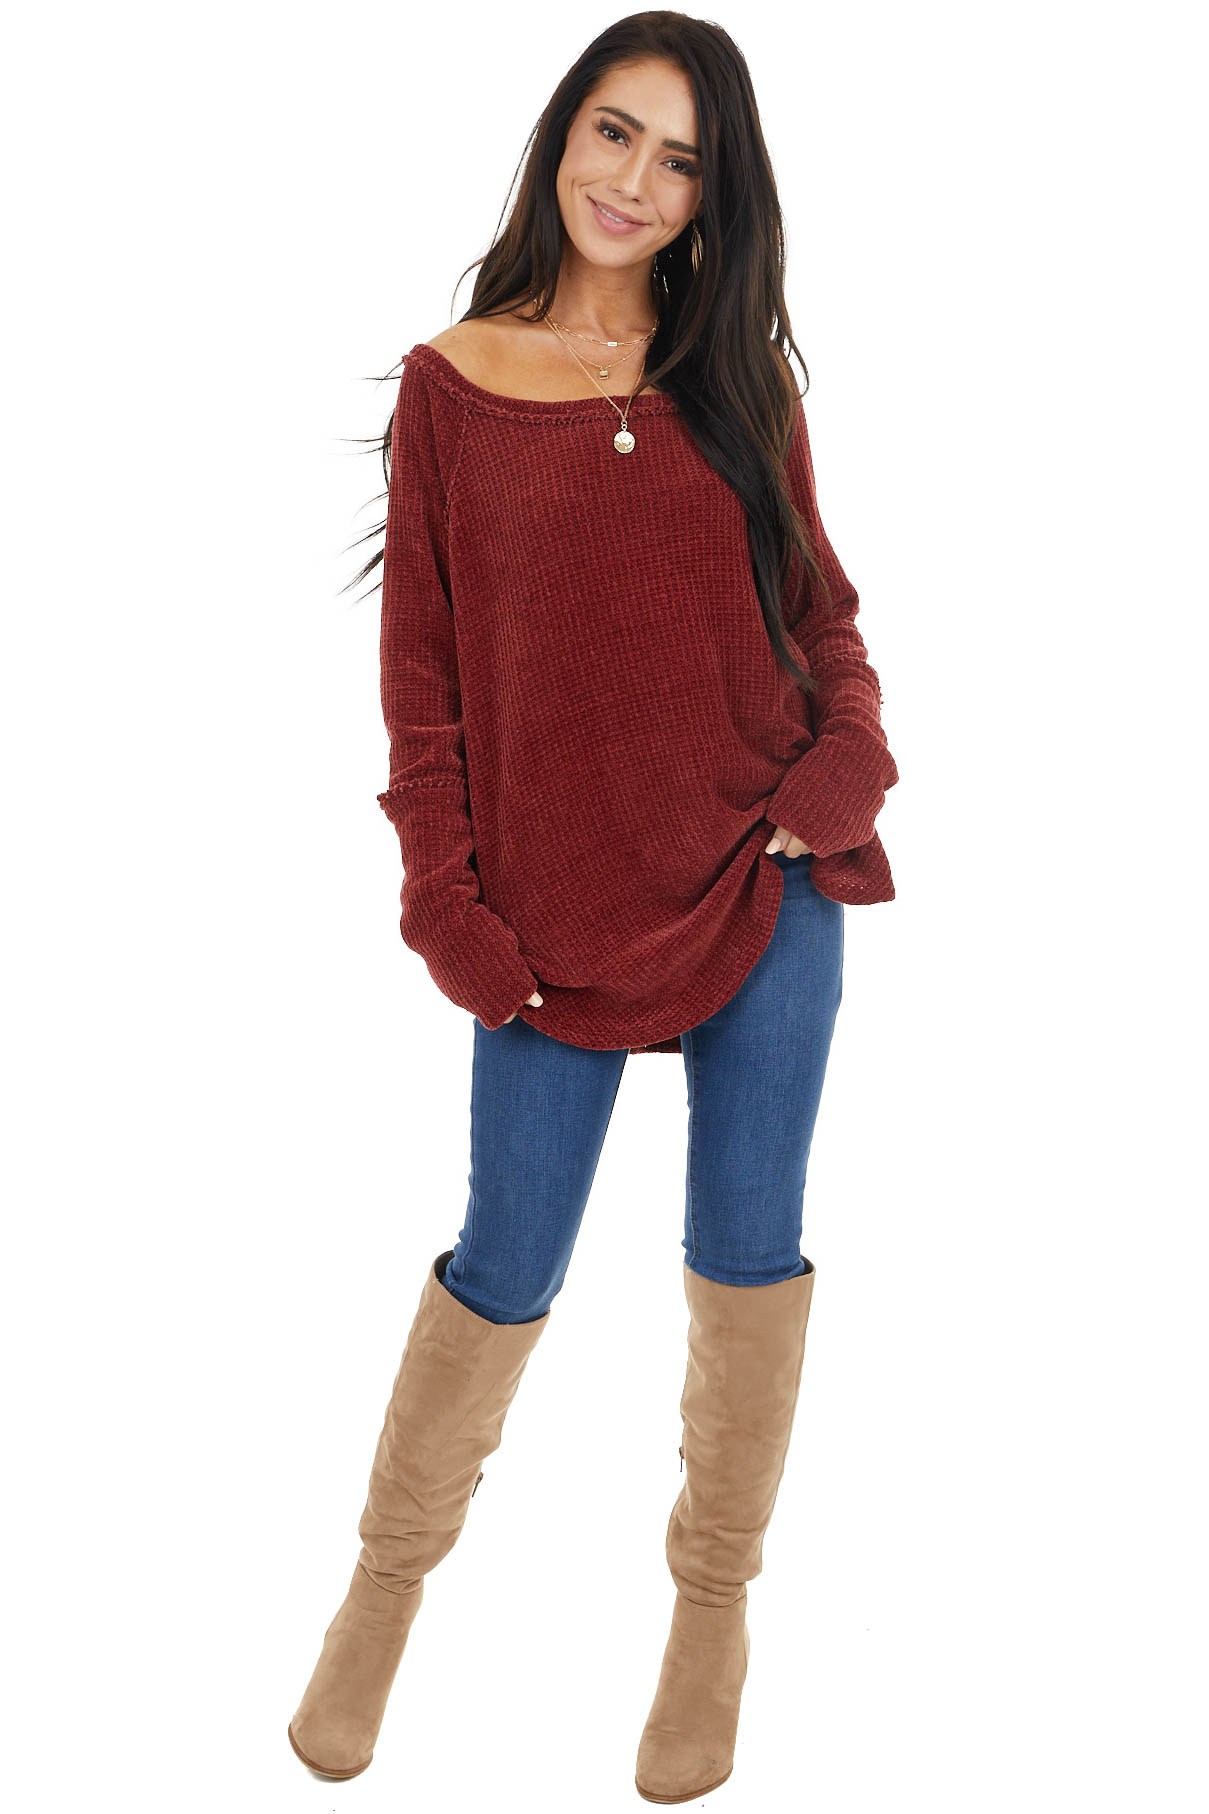 Maroon Chenille Long Sleeve Knit Top with Thumb Holes